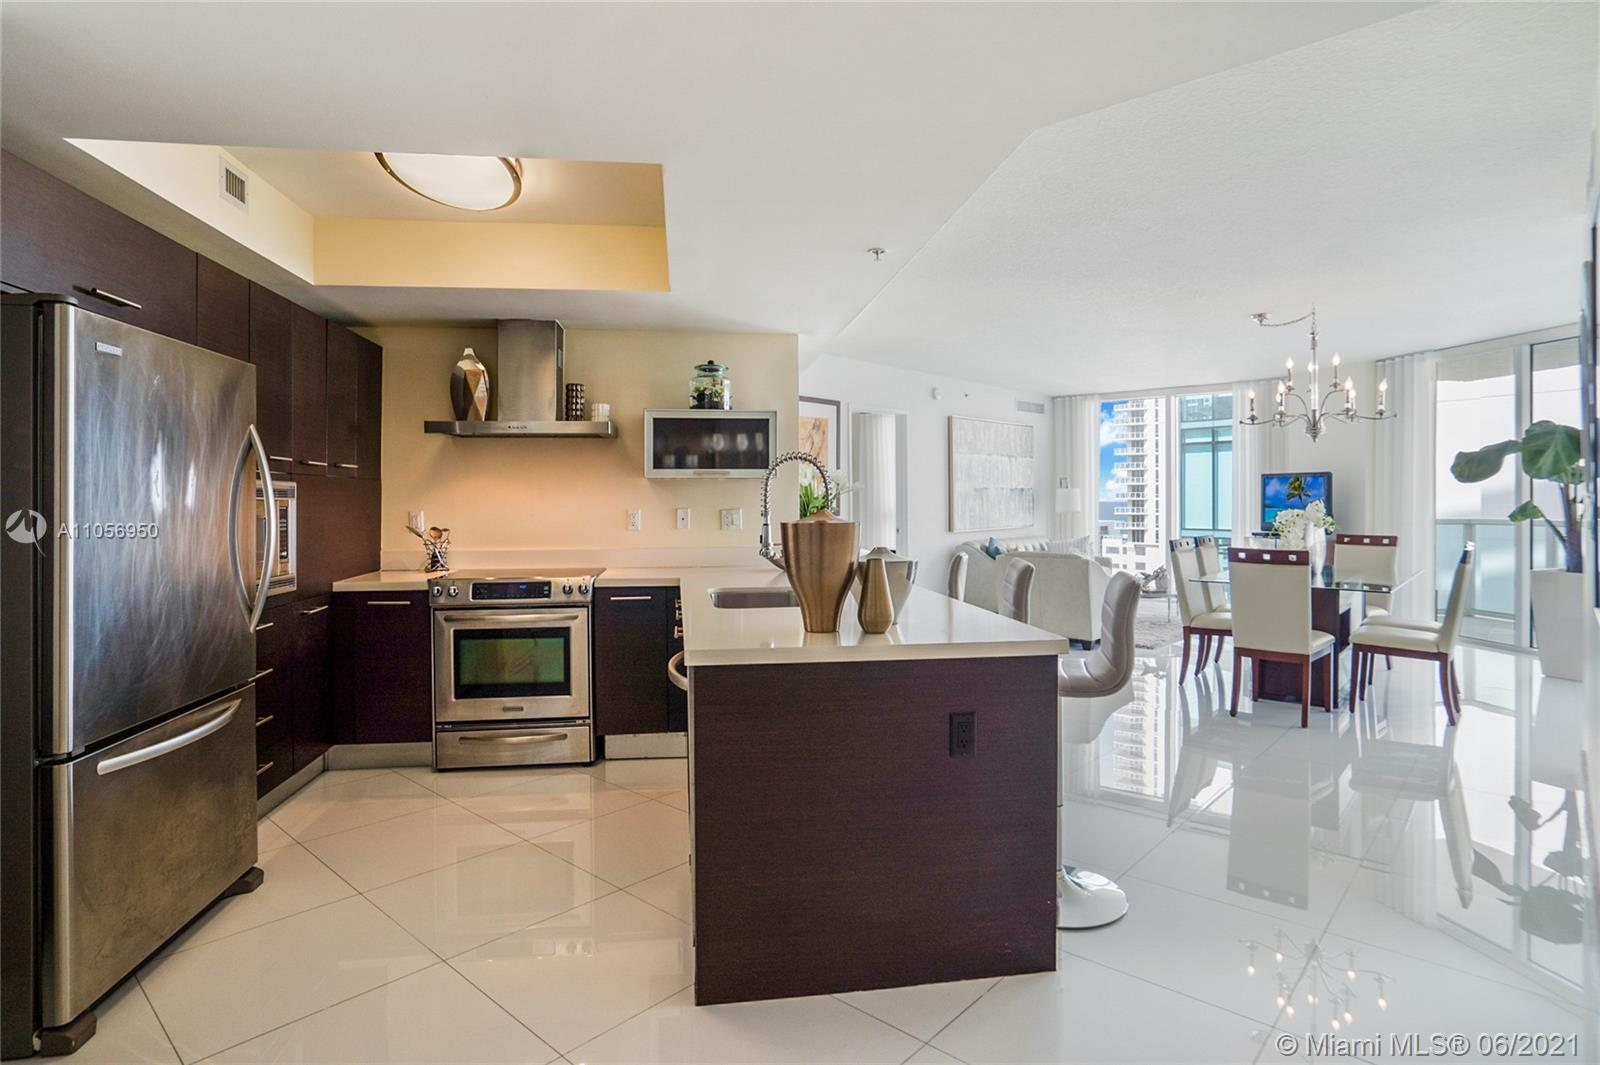 Beautiful and available immediately! Faces east with views to the south and north. Features white po